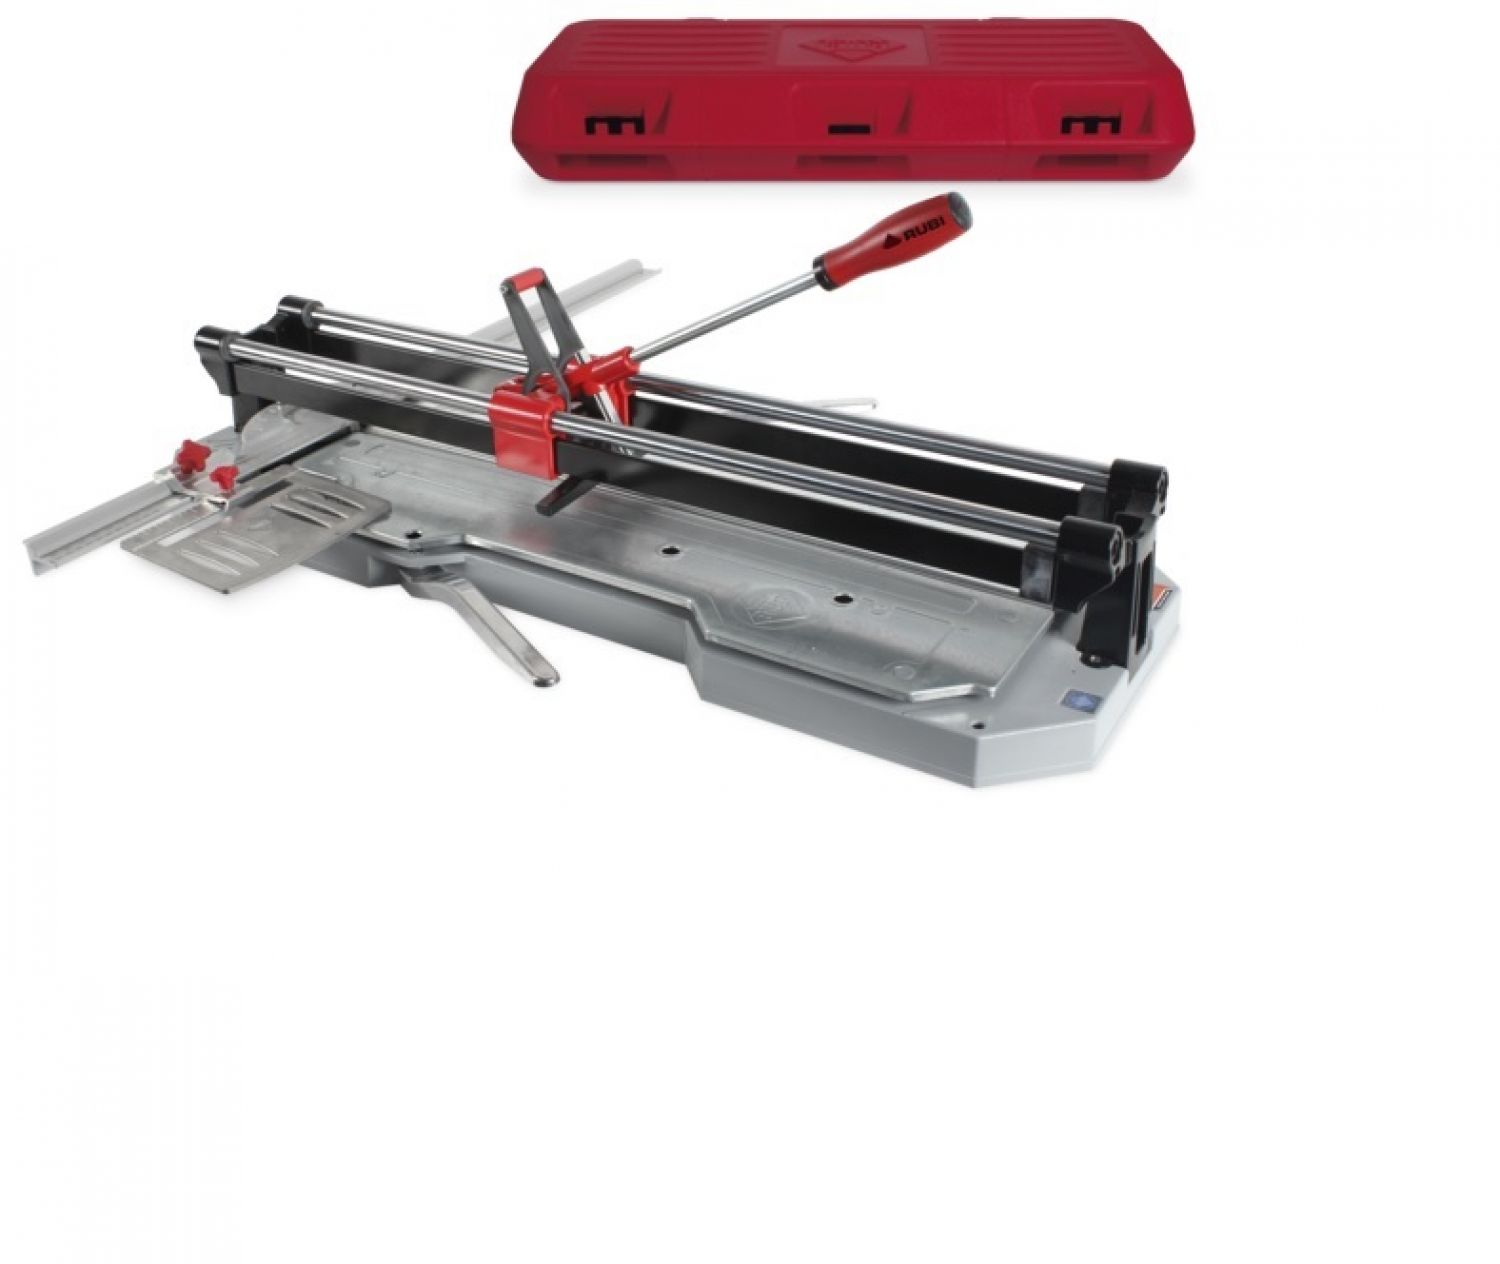 rubi tx 900 n tile cutter 93 cm cutting length ebay. Black Bedroom Furniture Sets. Home Design Ideas